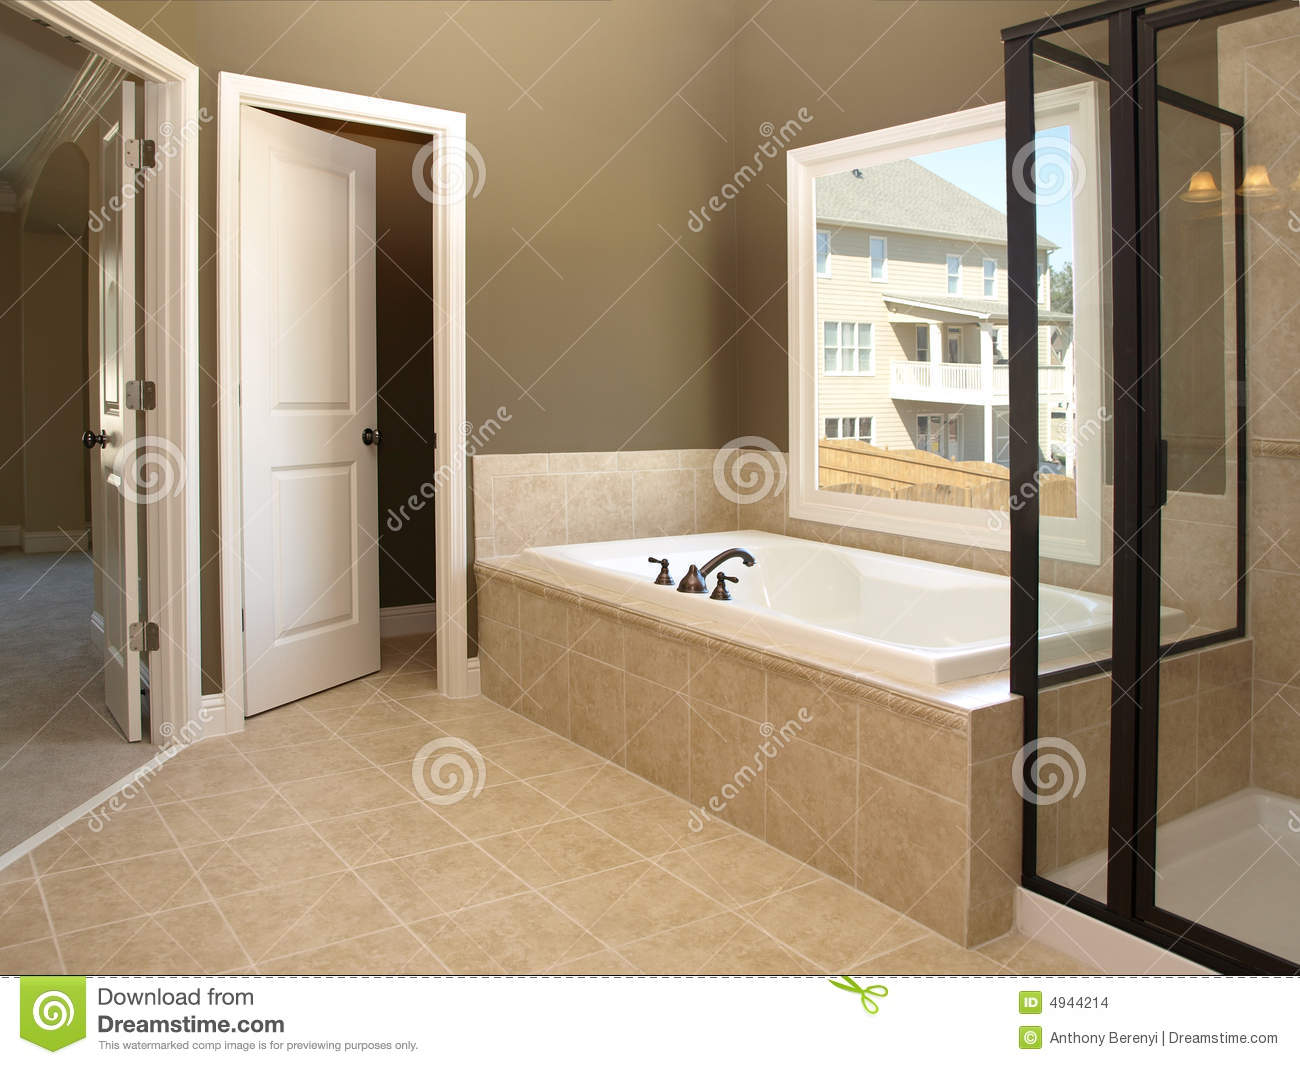 Baño De Tina Con Ruda:Tub and Bathroom Window